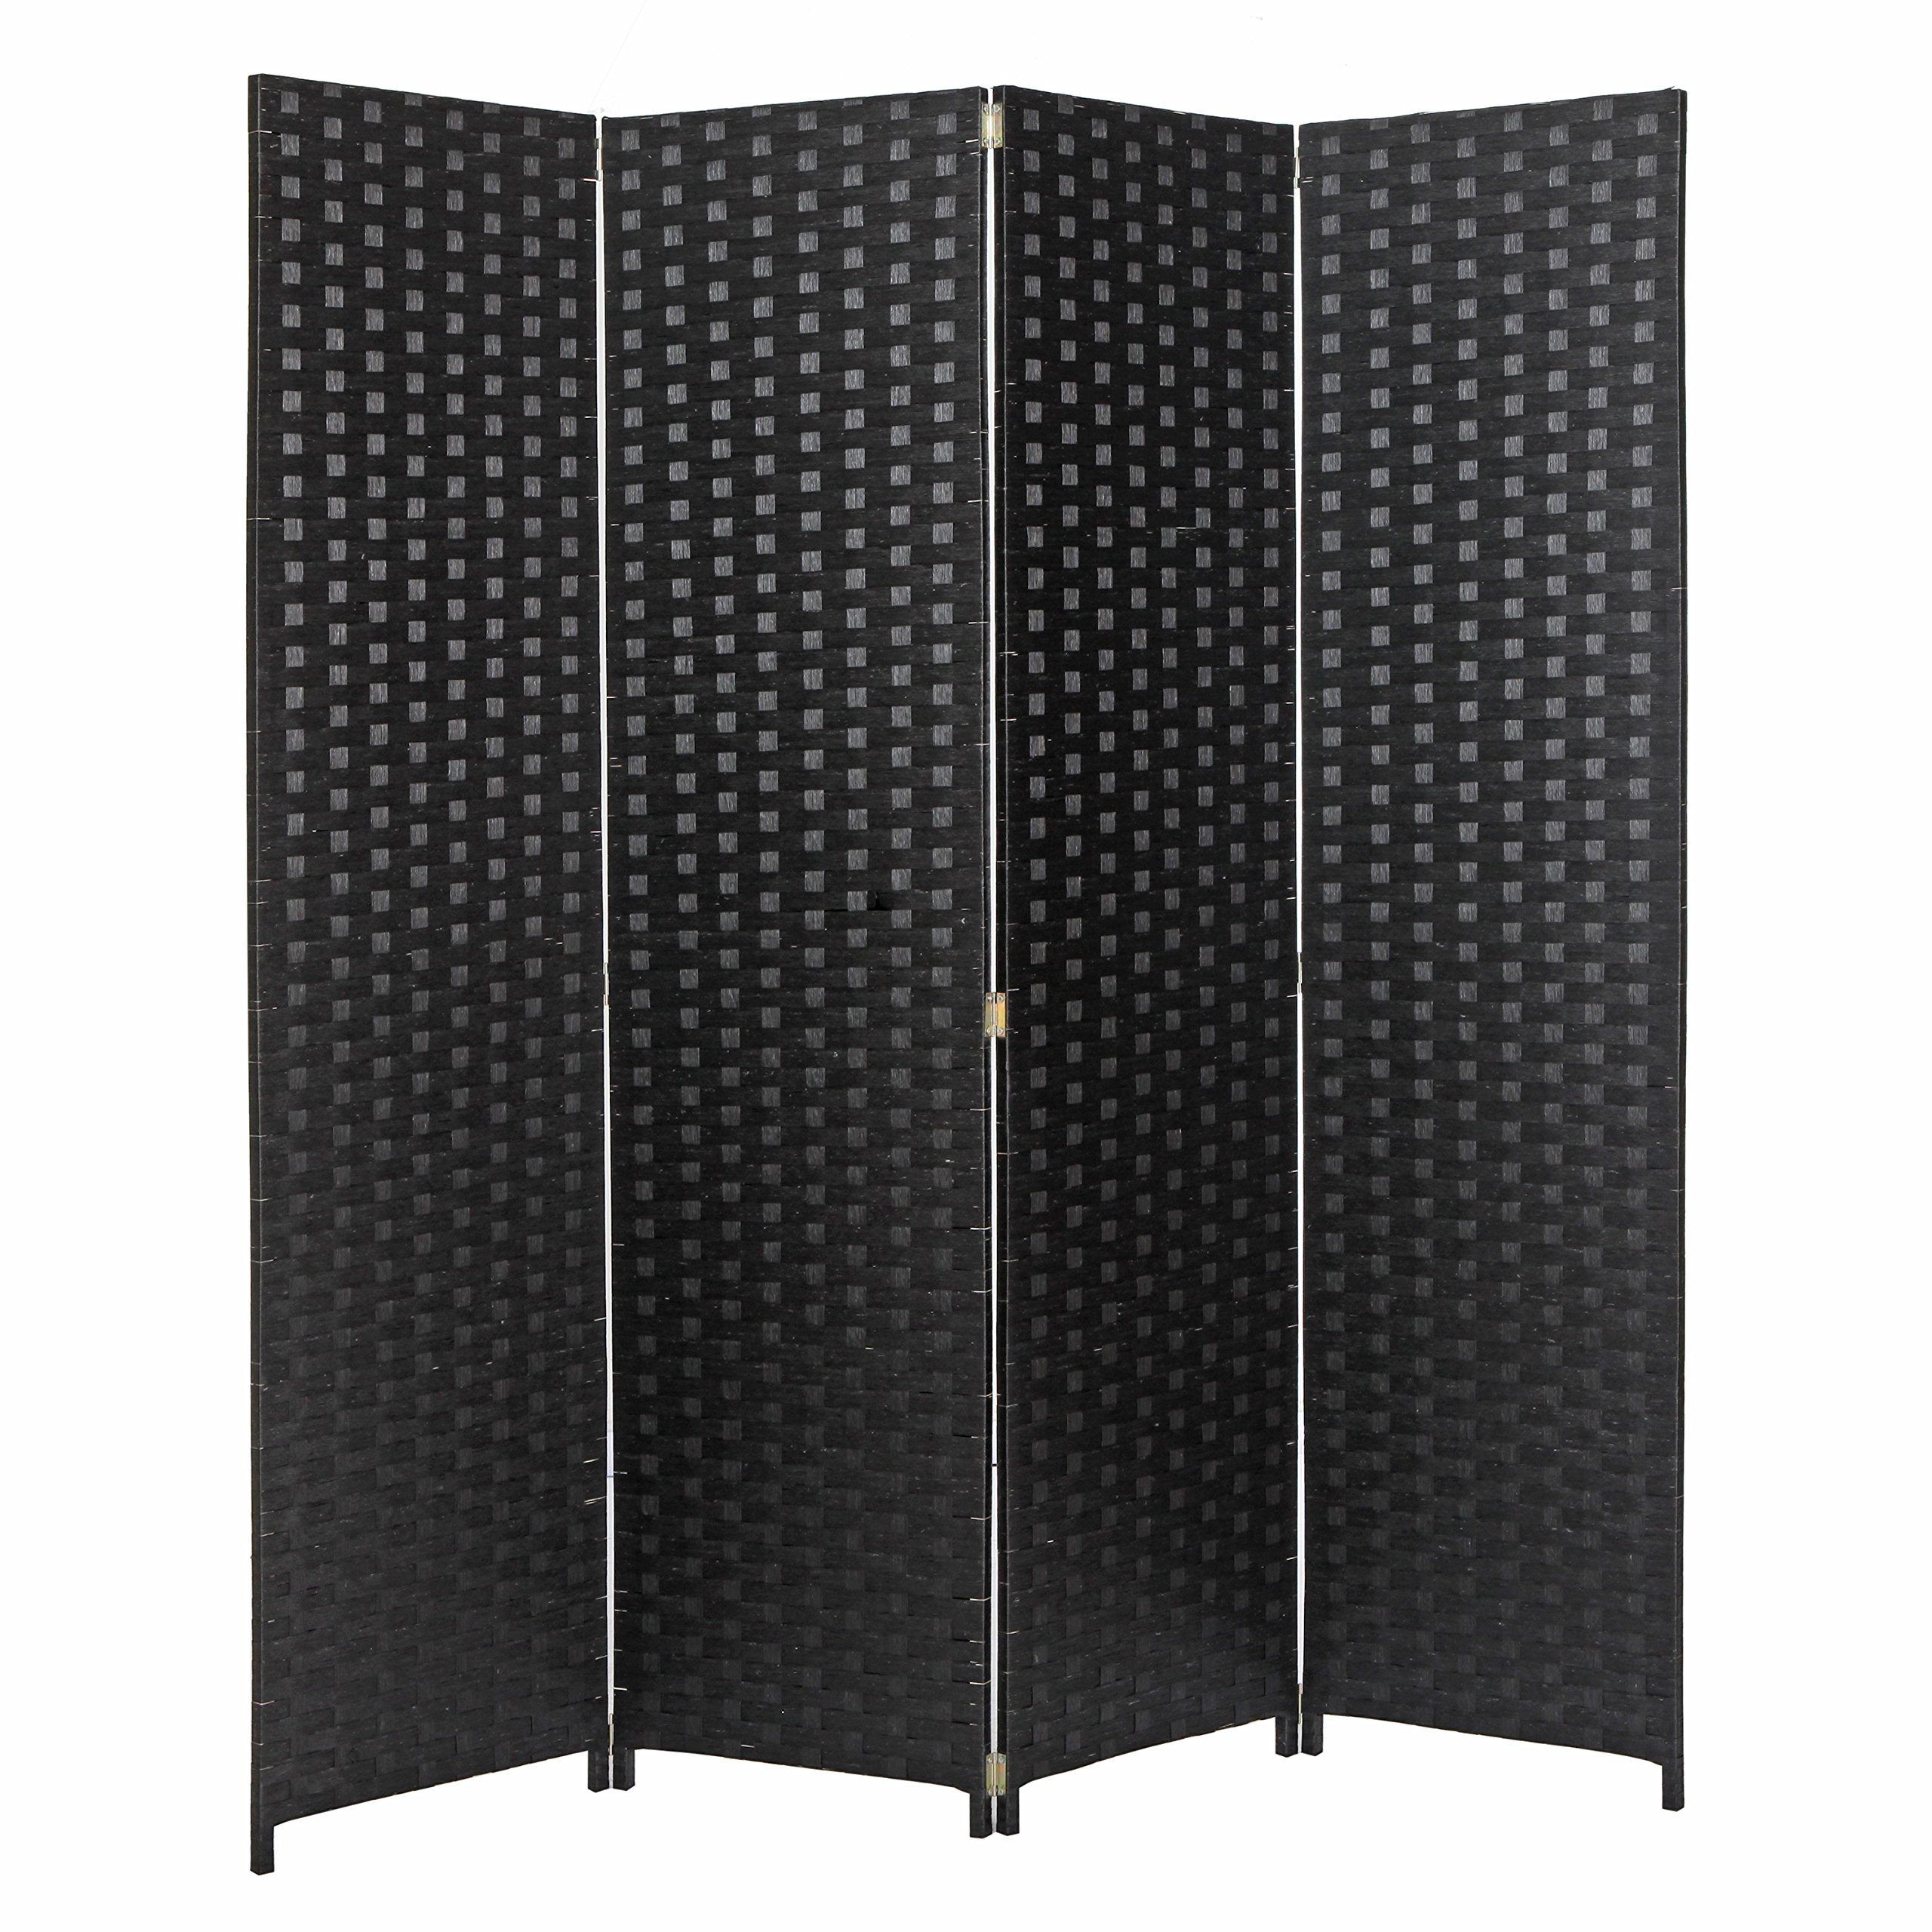 MyGift 4 Panel Hinged Room Divider, Woven Paper Rattan Privacy Screens, Black by MyGift